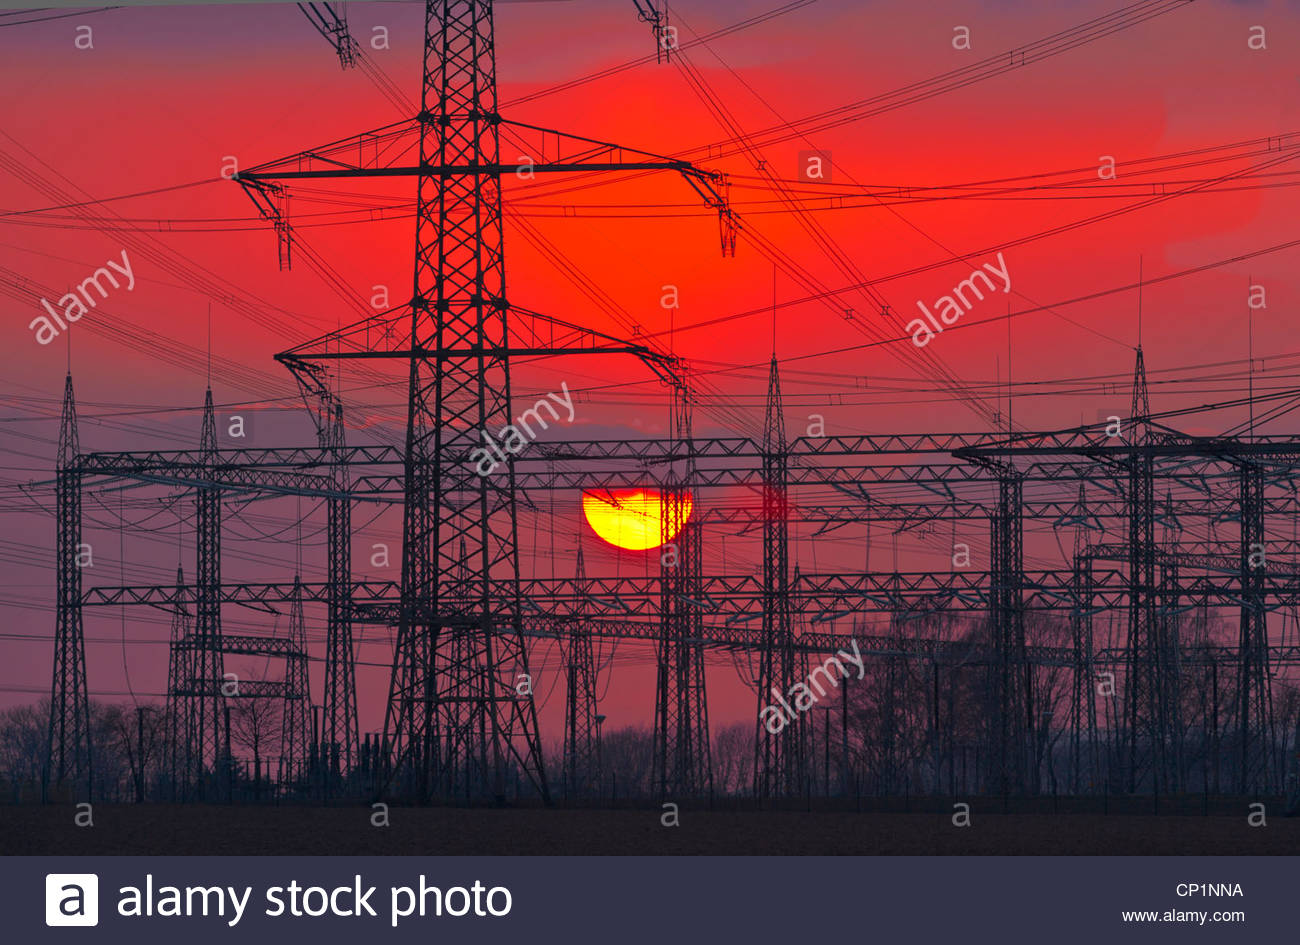 substation electricity power transformer station setting sun powerlines pylons energy supply distribution electric - Stock Image